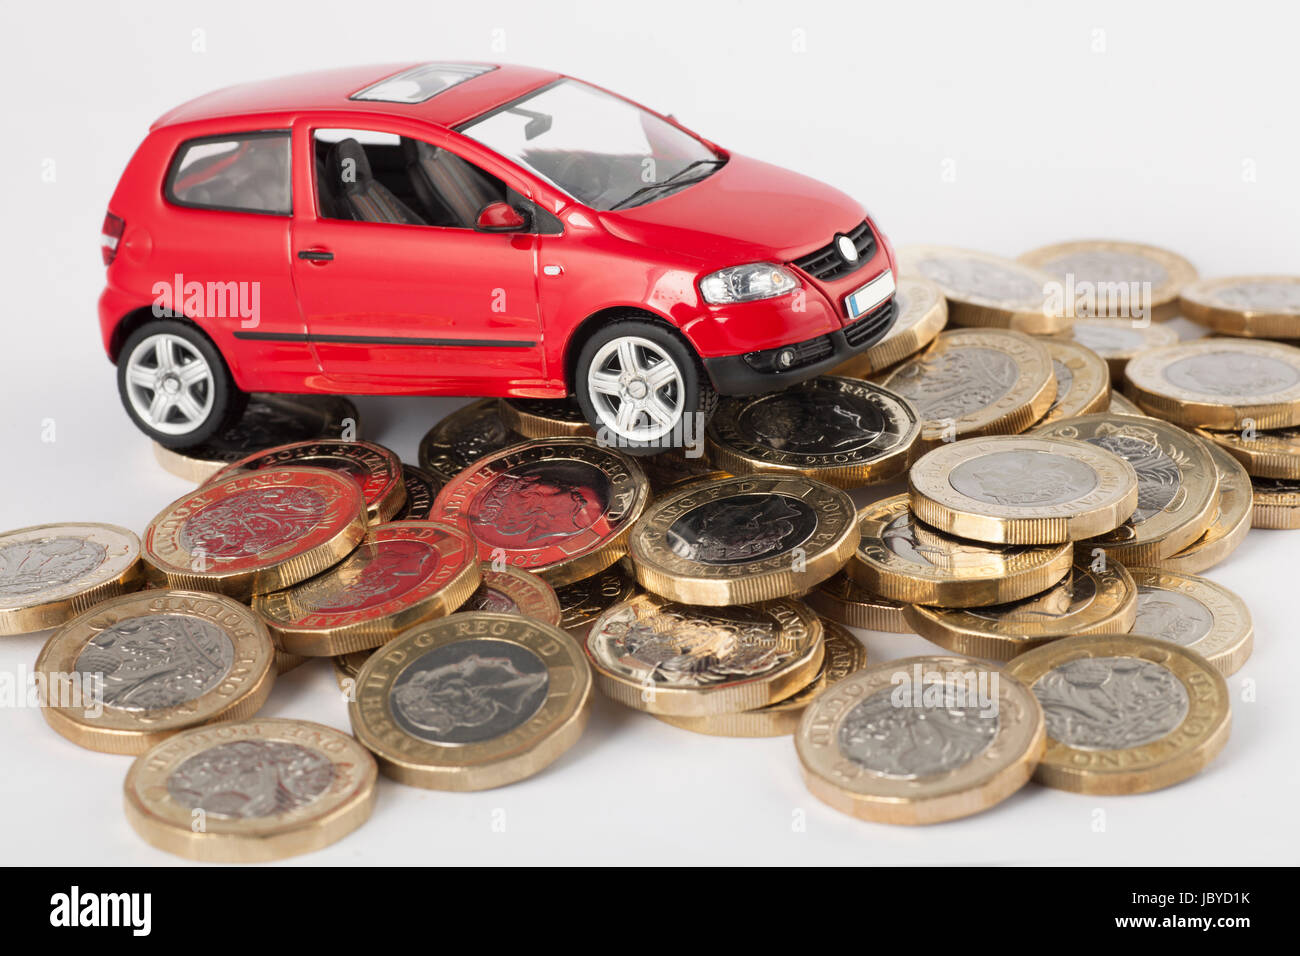 Cost of motoring, repairs, tax, MOT and insurance. New pound coins. - Stock Image